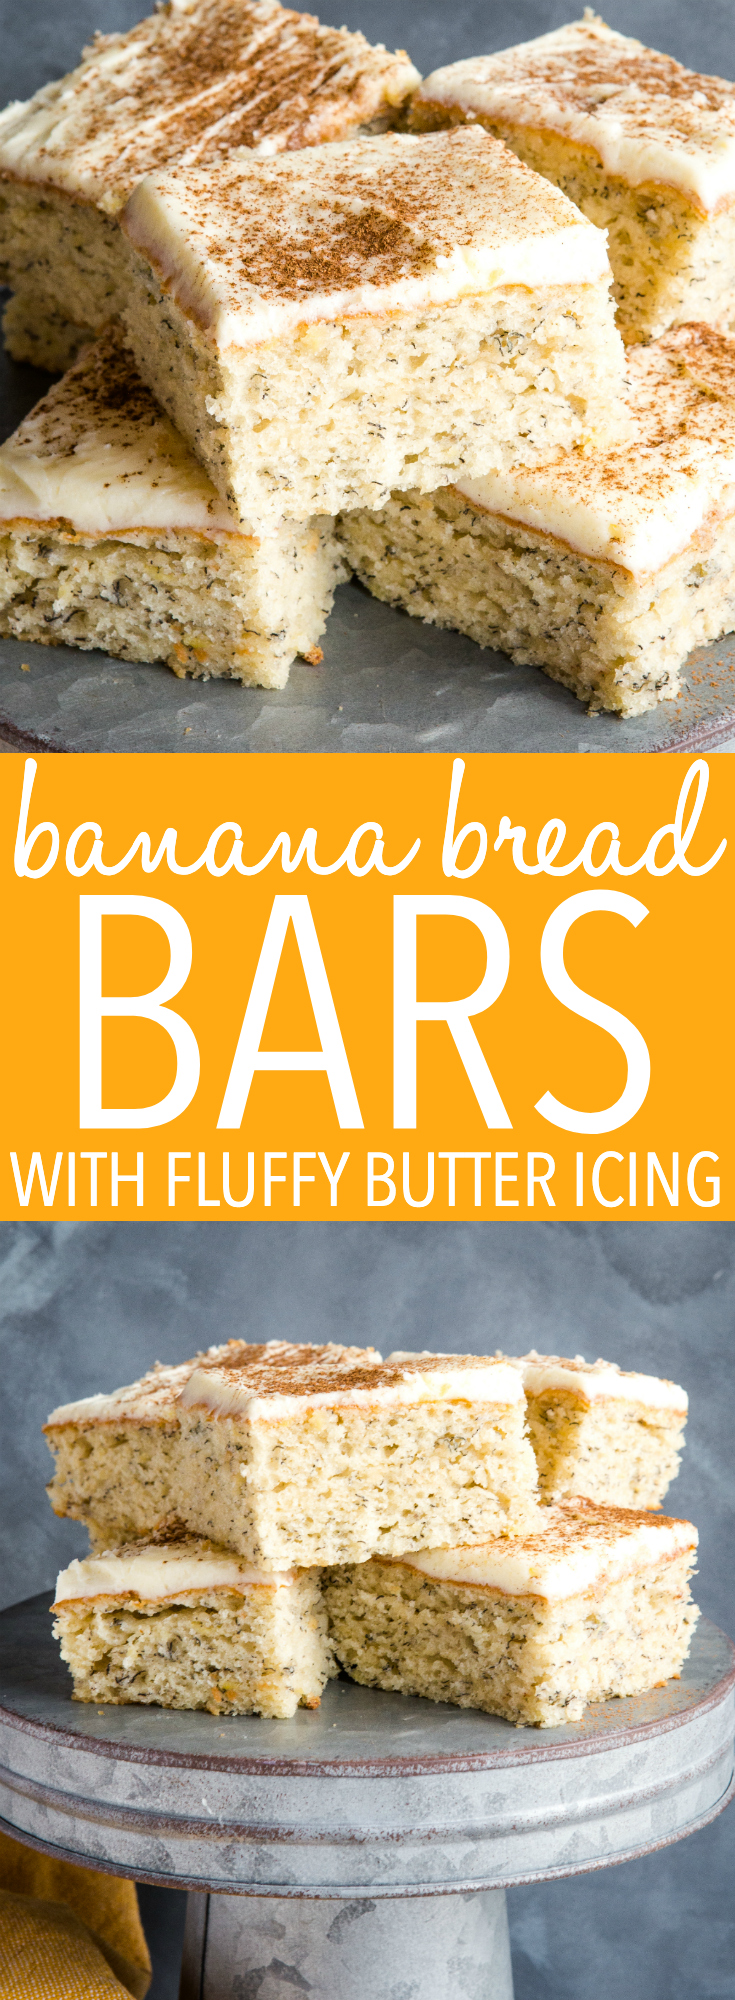 These Banana Bread Bars with Fluffy Butter Icing are the perfect sweet treat for any occasion! Made in one bowl with fresh bananas, and topped with the softest butter frosting! Recipe from thebusybaker.ca! #banana #bread #bars #frosting #buttercream #dessert #snack #baking #recipe #homemade #homesteading #cake  via @busybakerblog